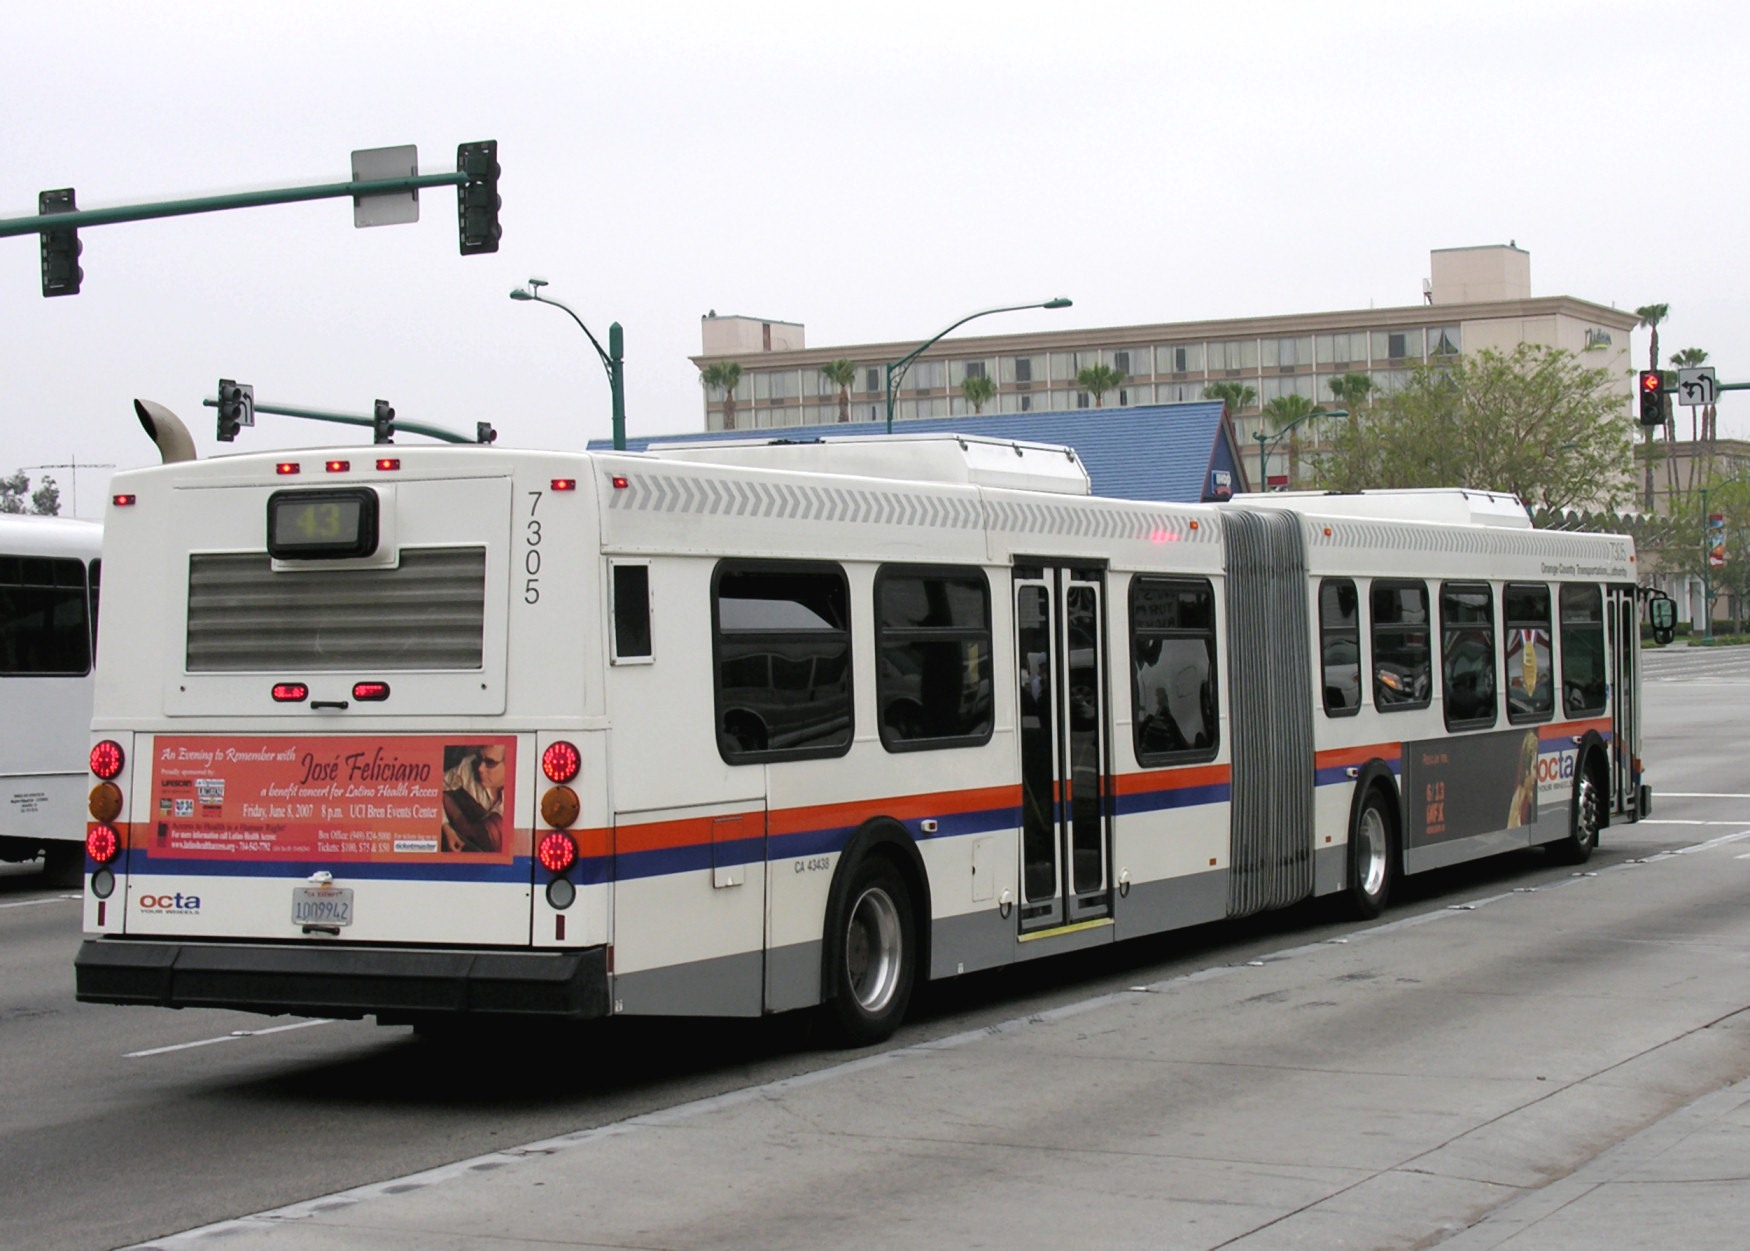 File:Orange County Transportation Authority articulated bus at ...